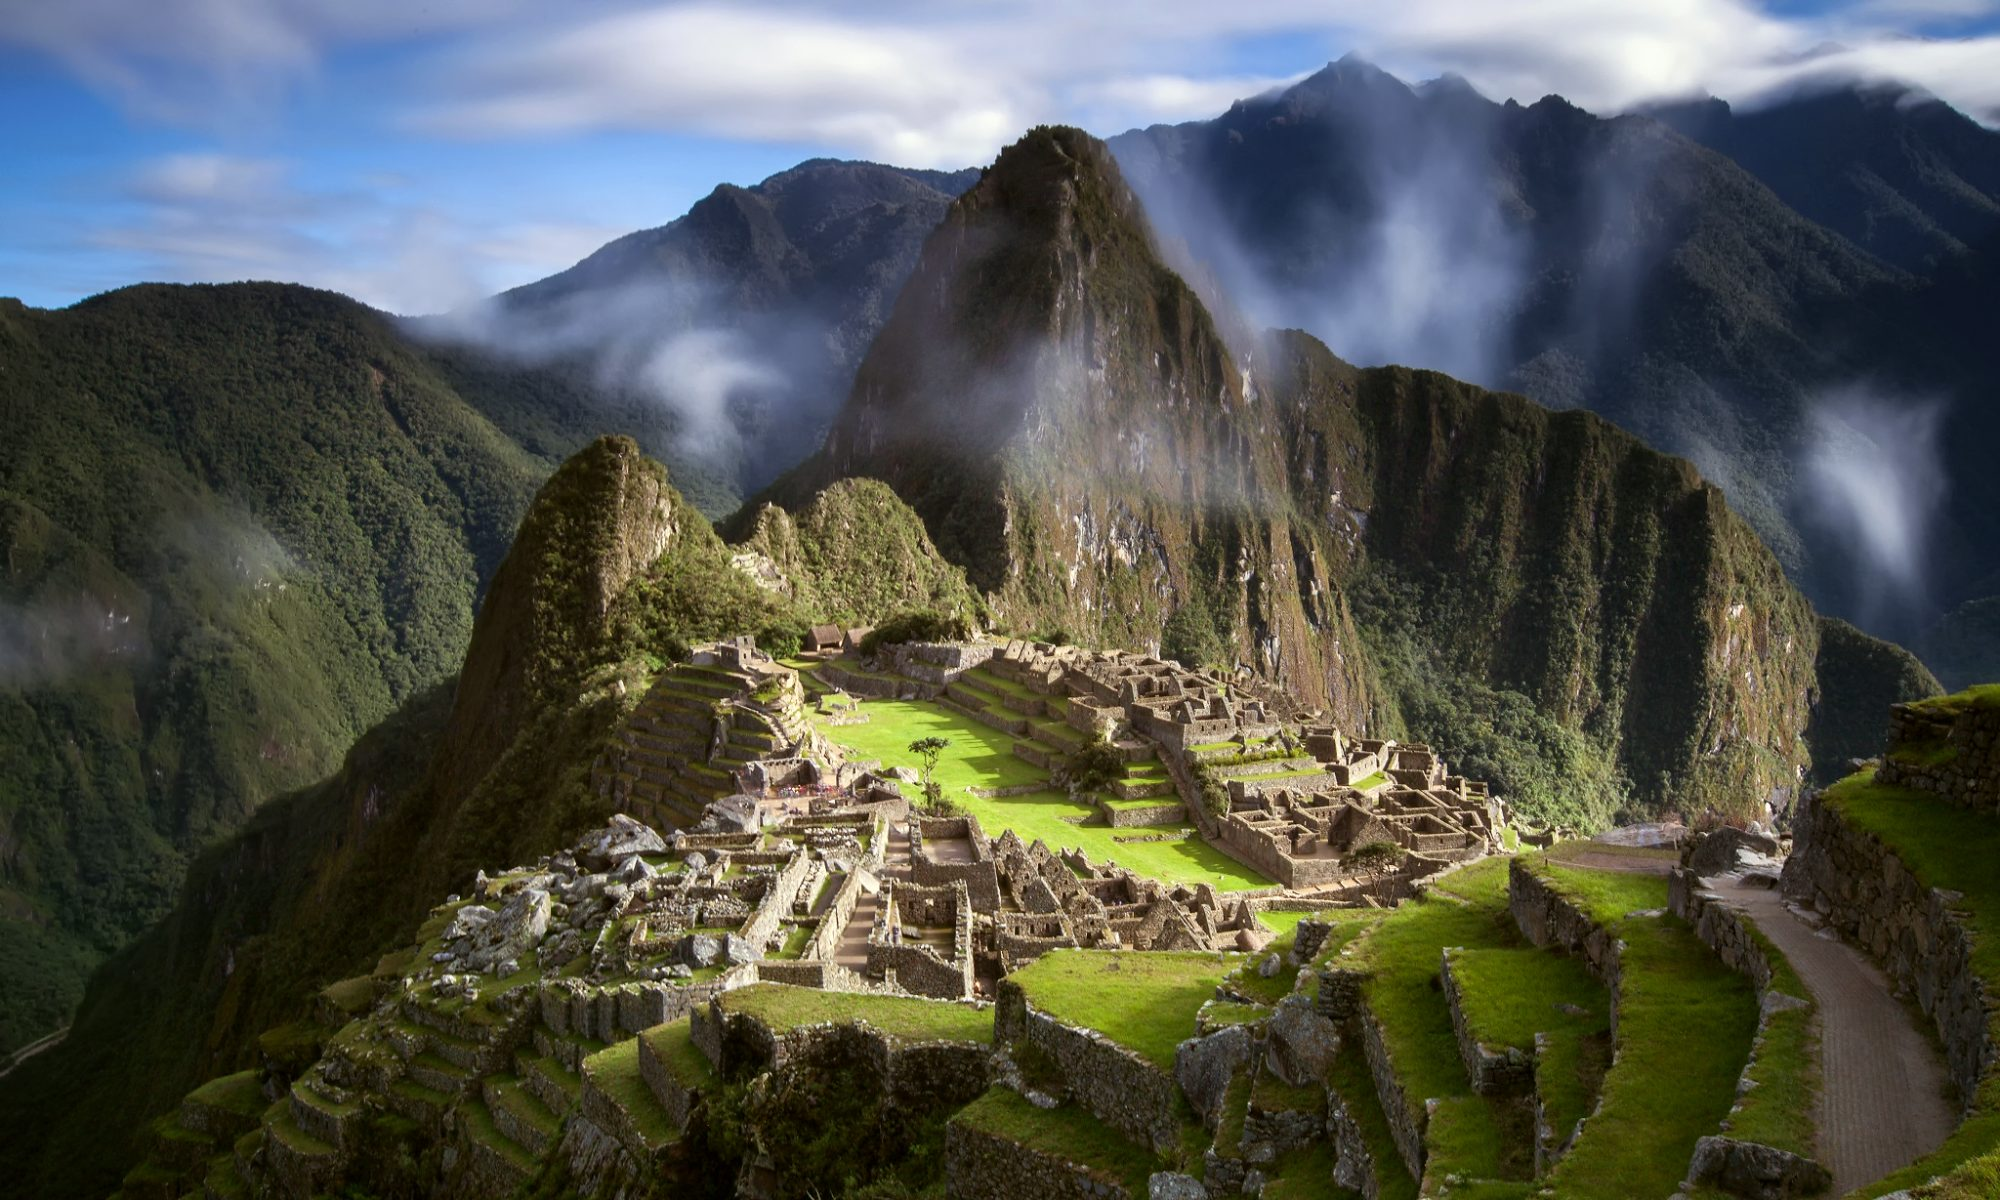 GreatPeru - Peruvian Travel Agency